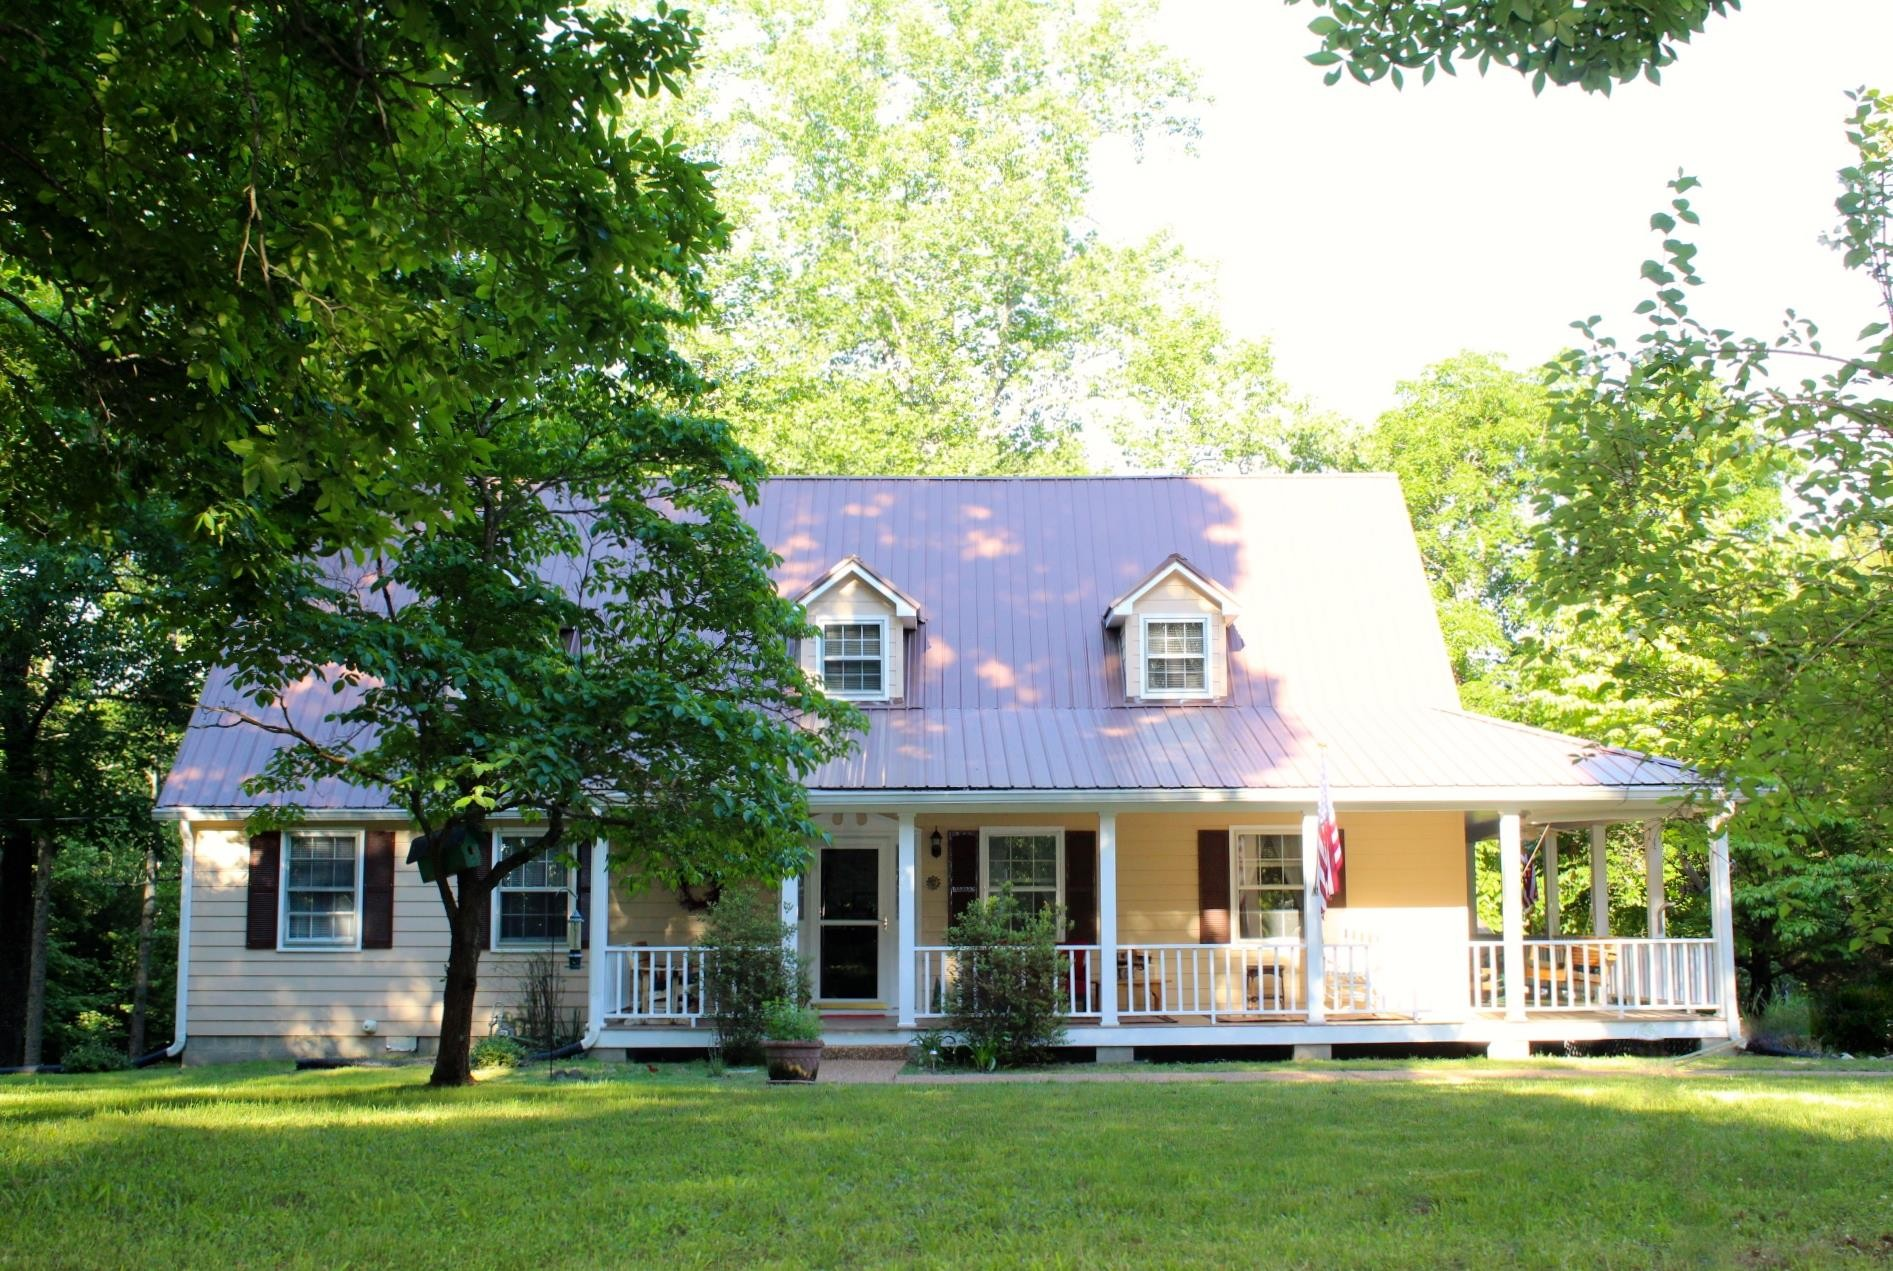 1880 Grays Bend Rd, Centerville, TN 37033 - Centerville, TN real estate listing